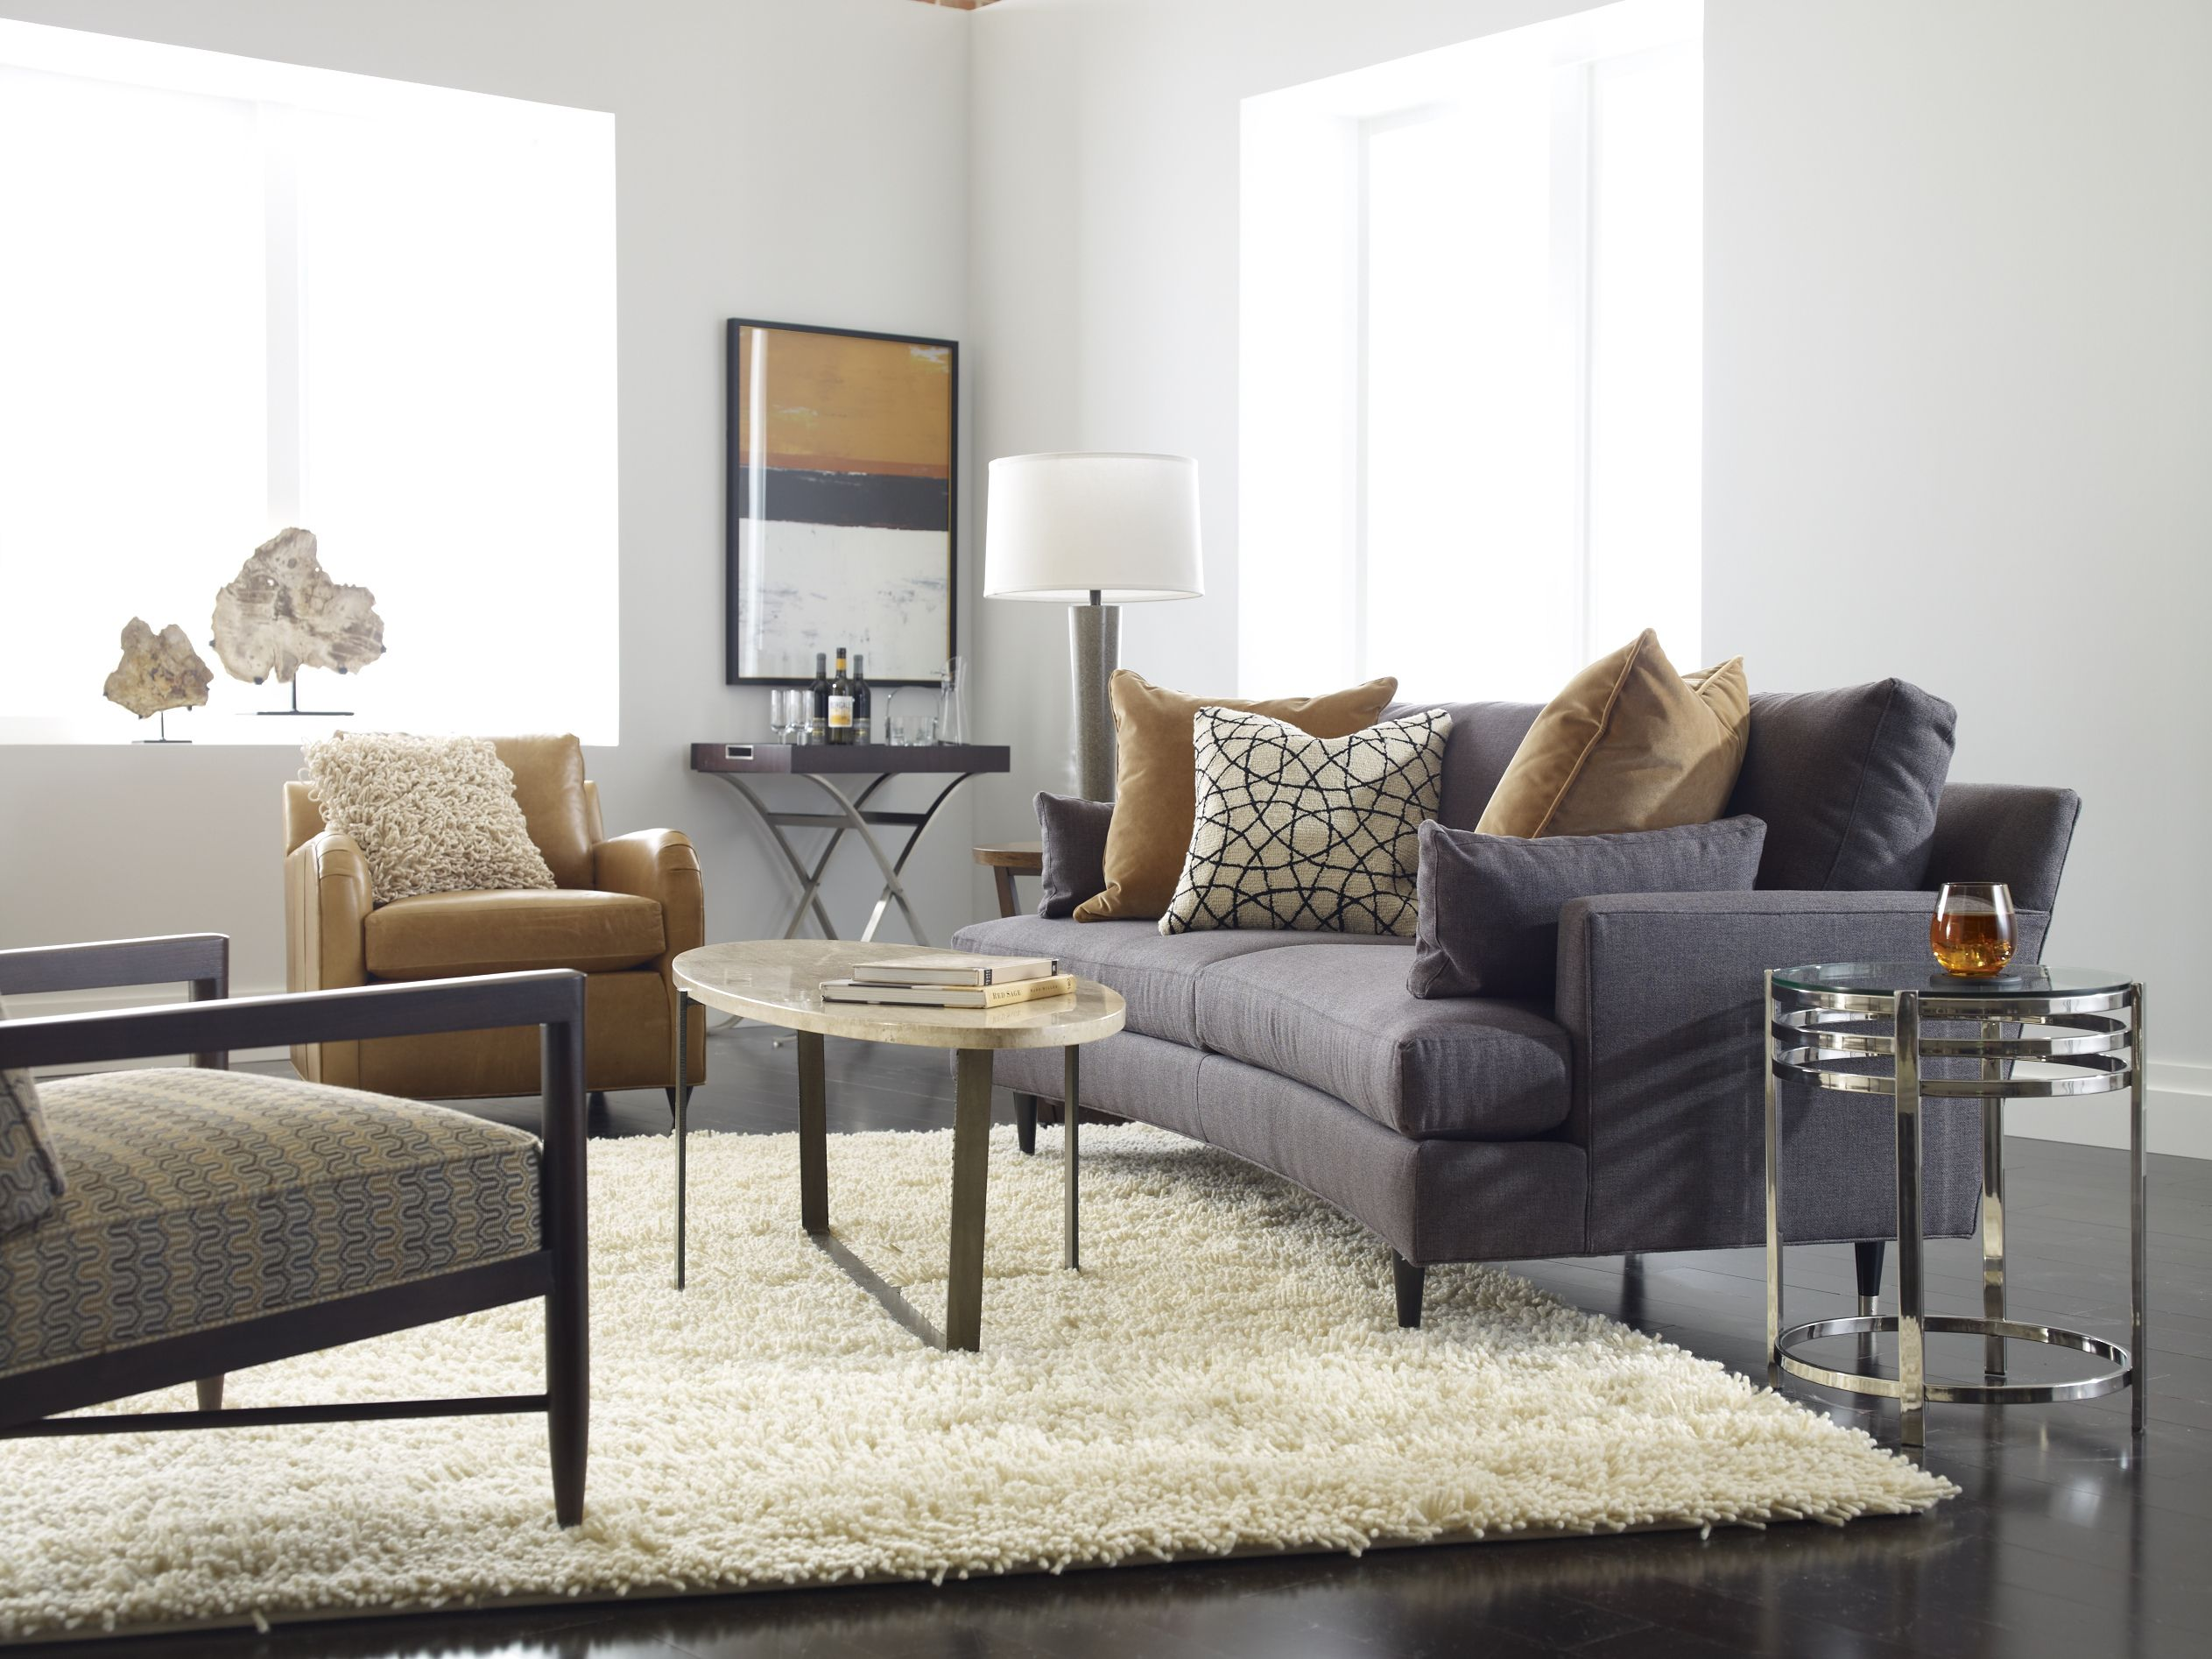 Oh Apollo Ethan Allen Neutral Interiors Sofa Design Ethan